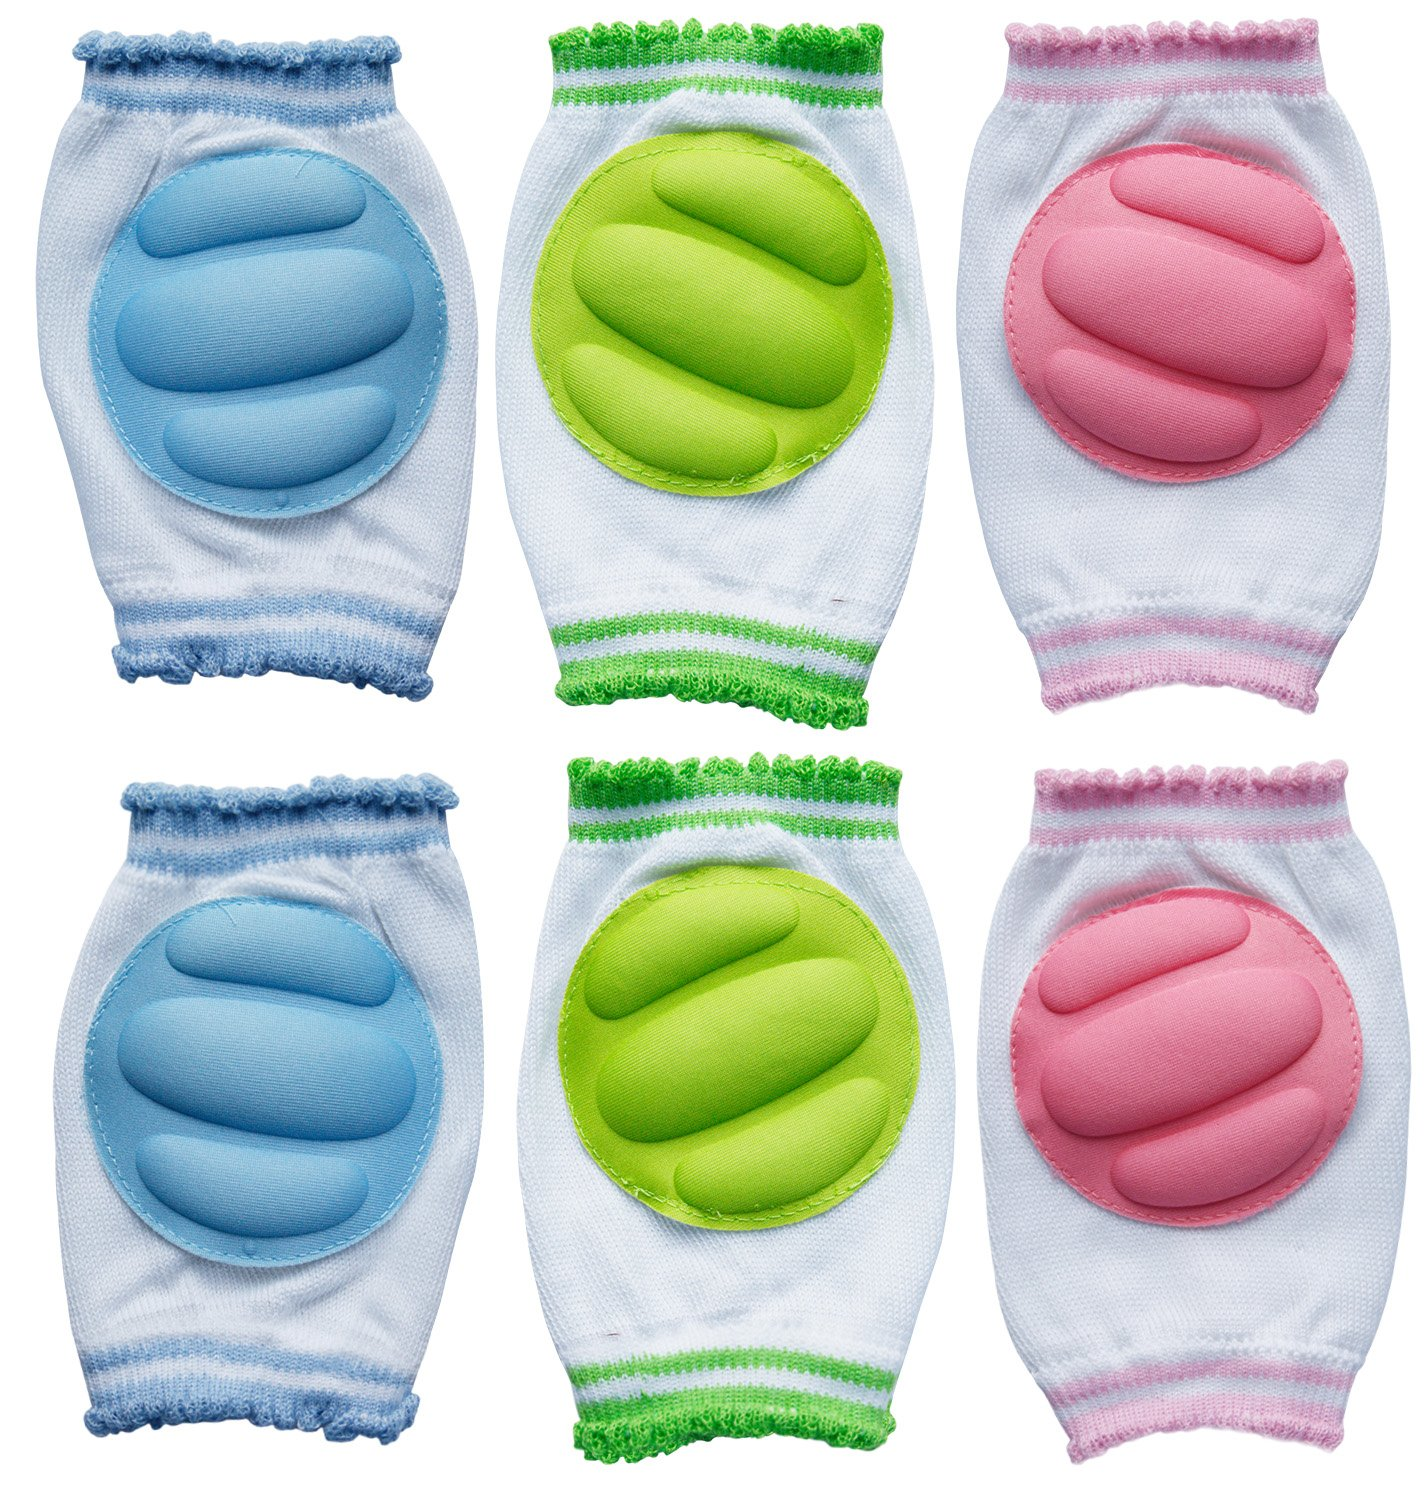 Leyaron Breathable Adjustable Elastic Unisex Infant Toddler Baby Kneepads Knee Elbow Pads Crawling Safety Protector, 3 Pairs